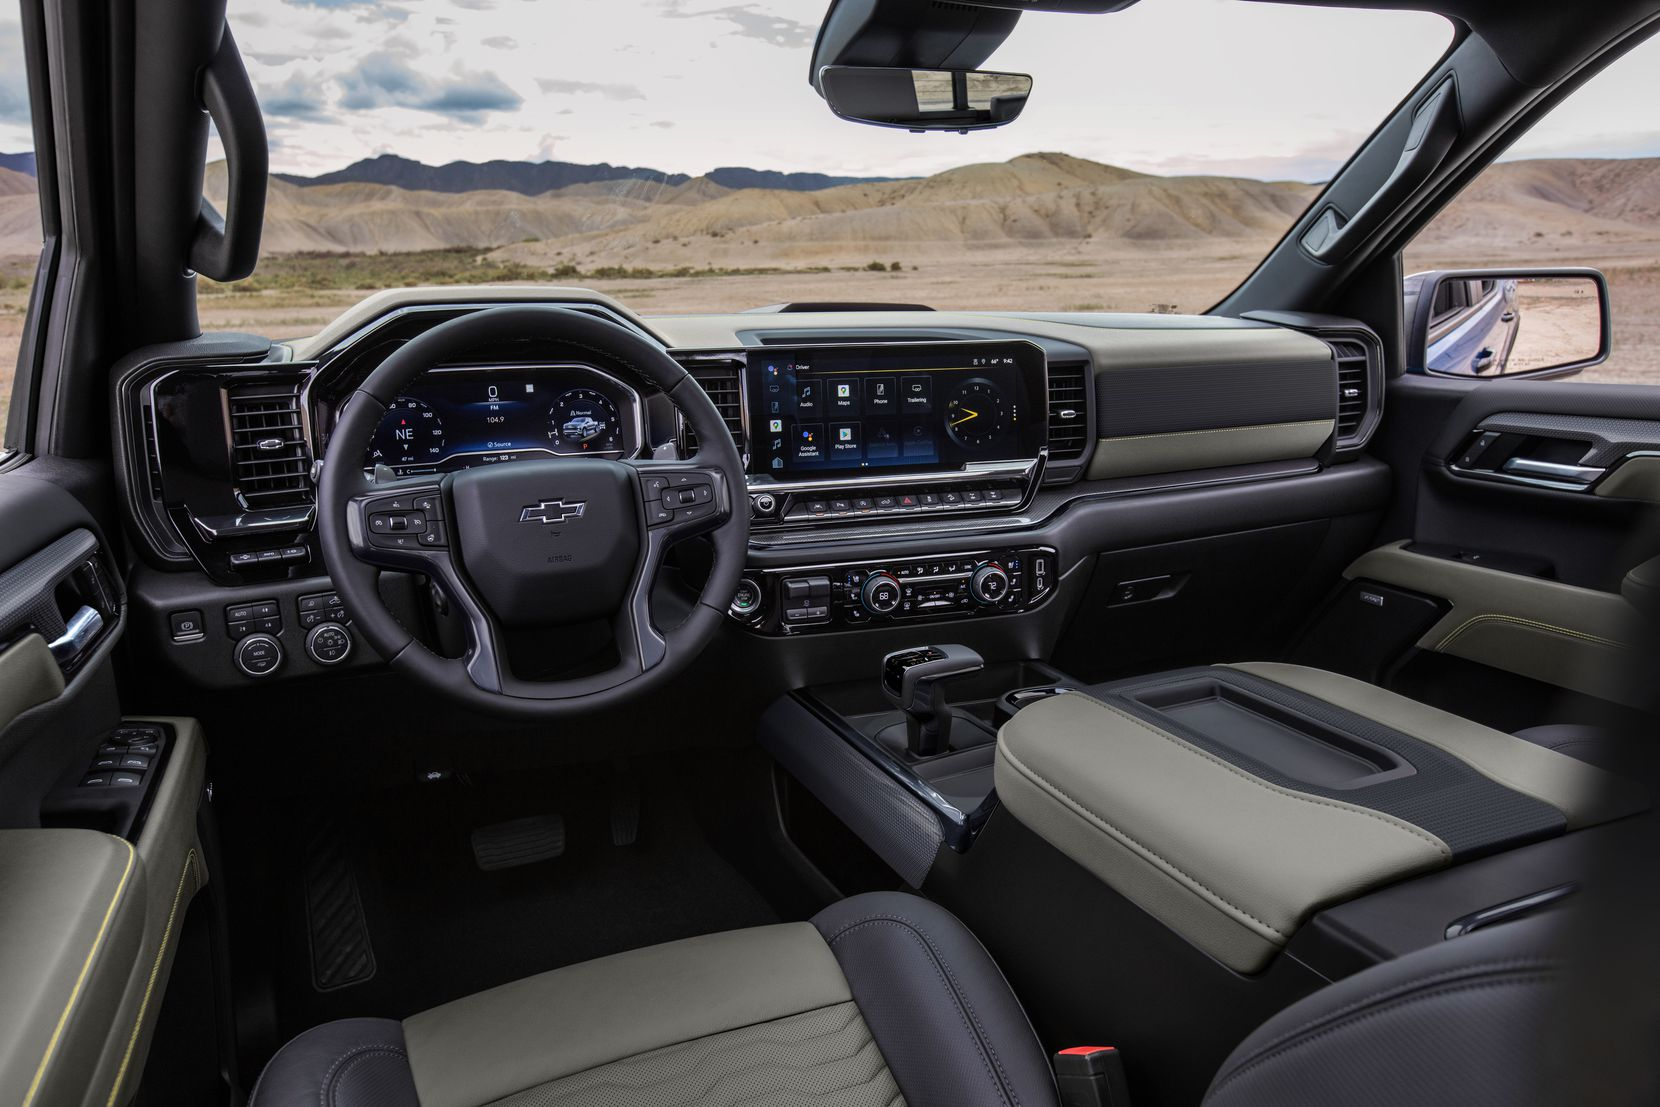 The ZR2 is equipped with a state-of-the-art, digital interior.